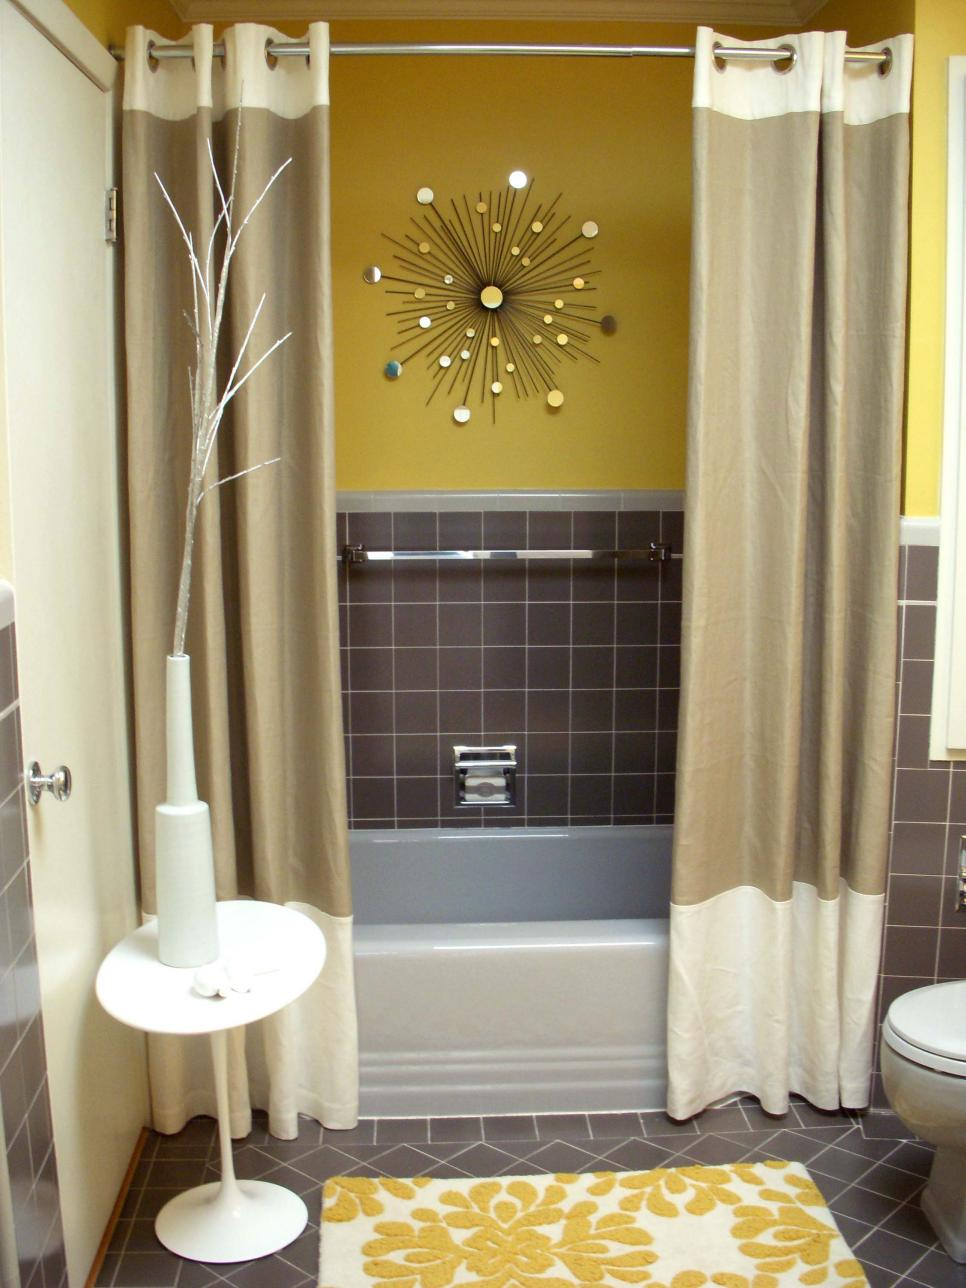 Bathrooms On A Budget Our Favorites From Rate My Space DIY - Diy bathroom remodel for small bathroom ideas